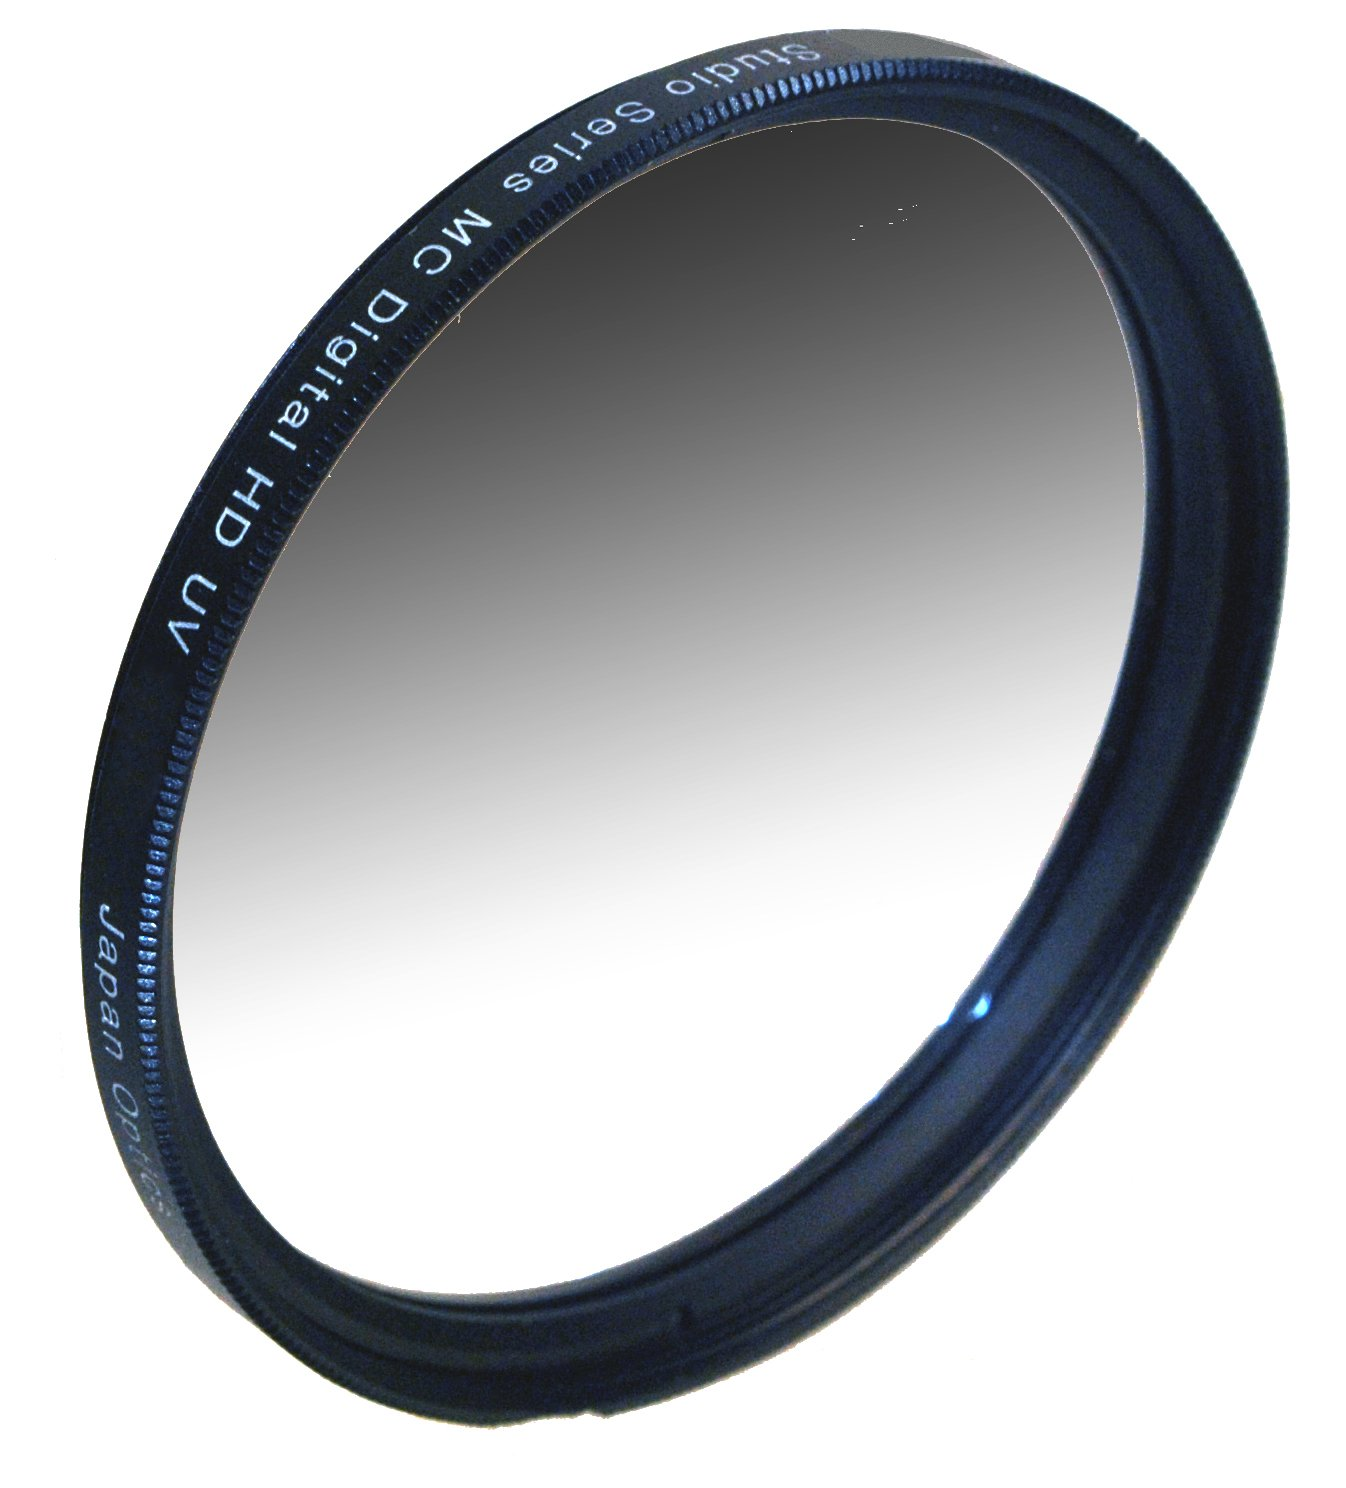 52mm UV Digital Multi-Coated Lens Glass Filter for Sony Canon Cameras